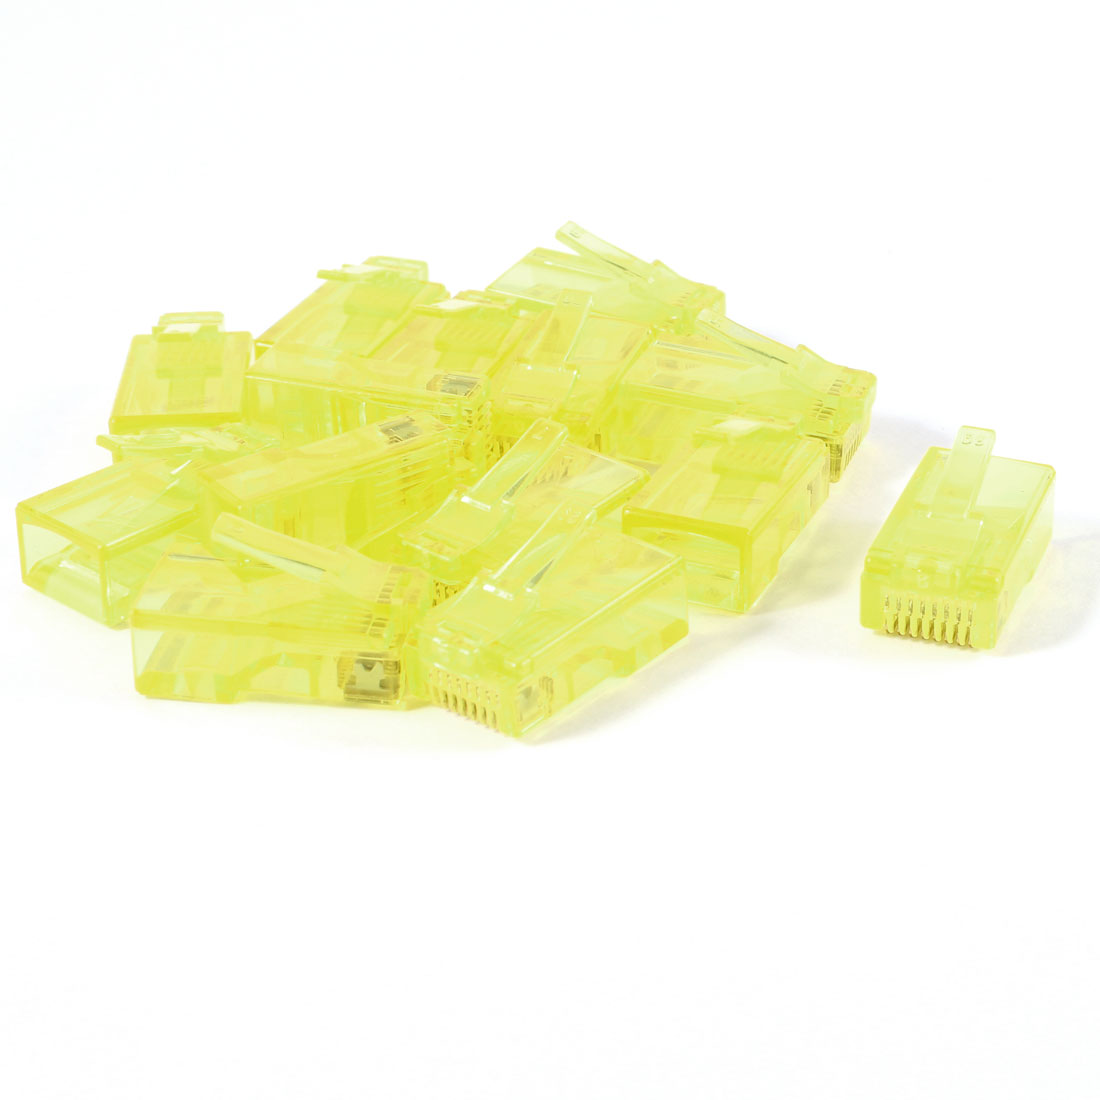 12 Pcs Yellow Plastic Shell RJ45 8P8C Modular Plug End Network Connector